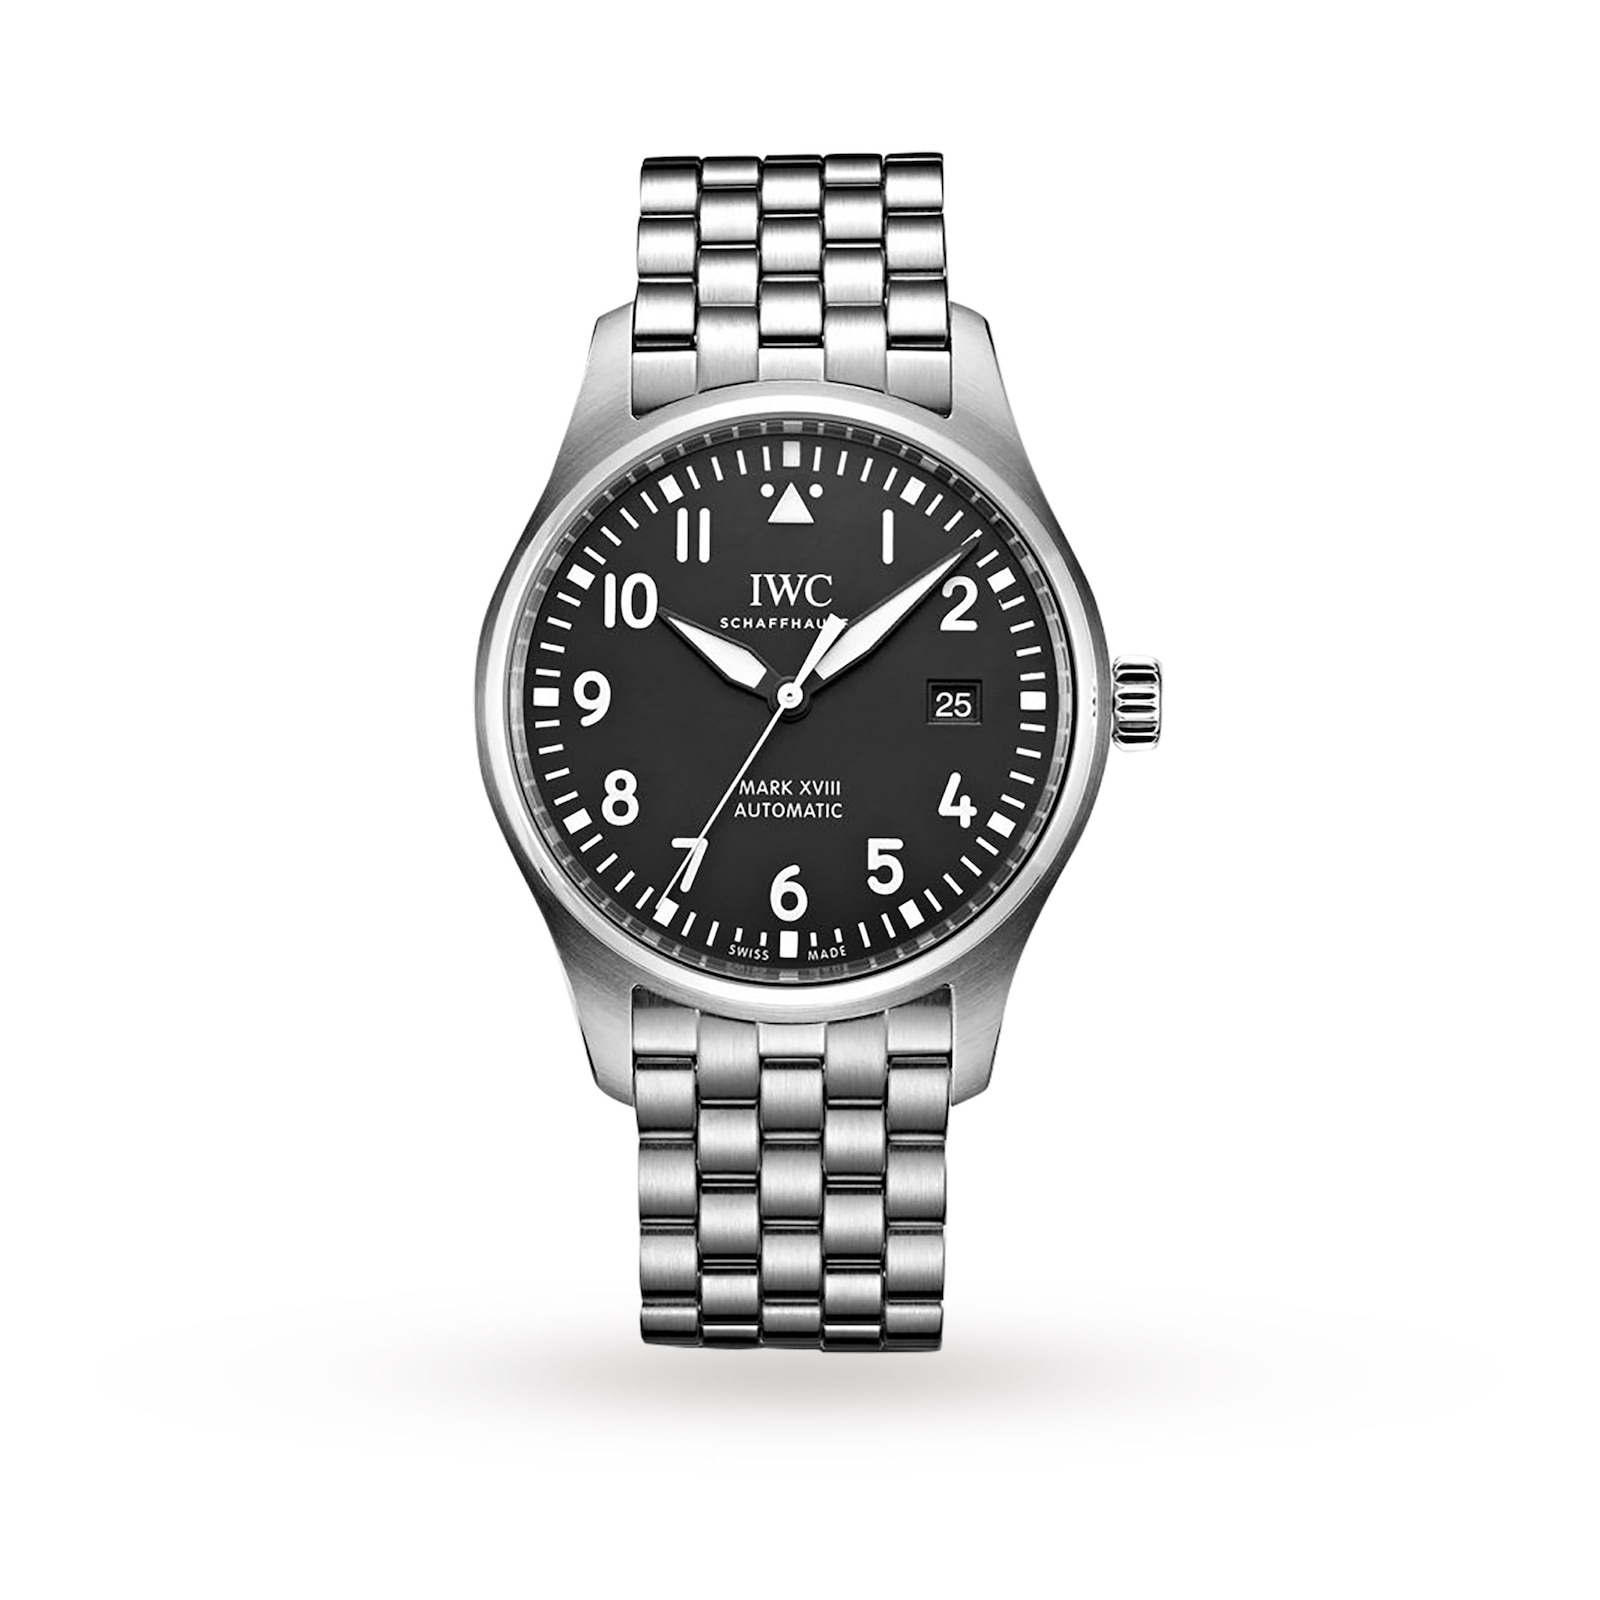 IWC Pilot's Mark XVIII Mens Watch